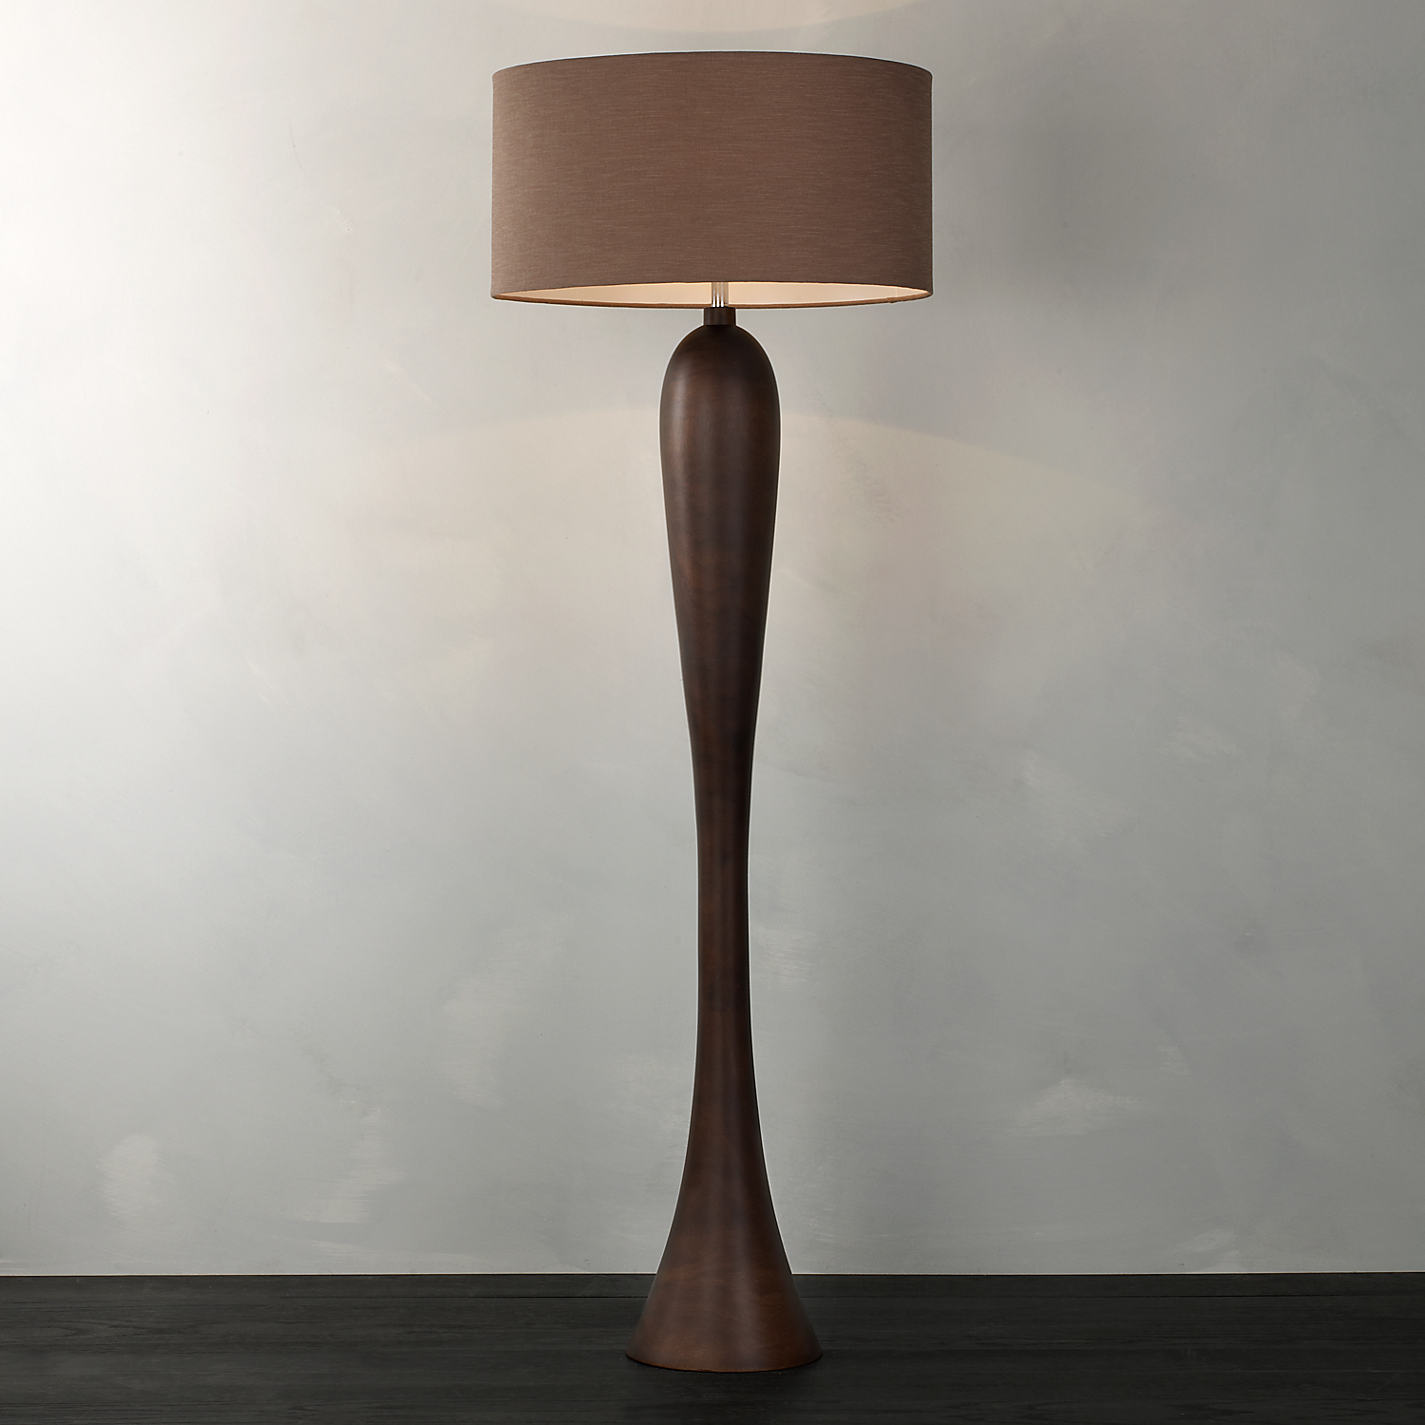 standard lamps living room floor lamps WQDFJIQ